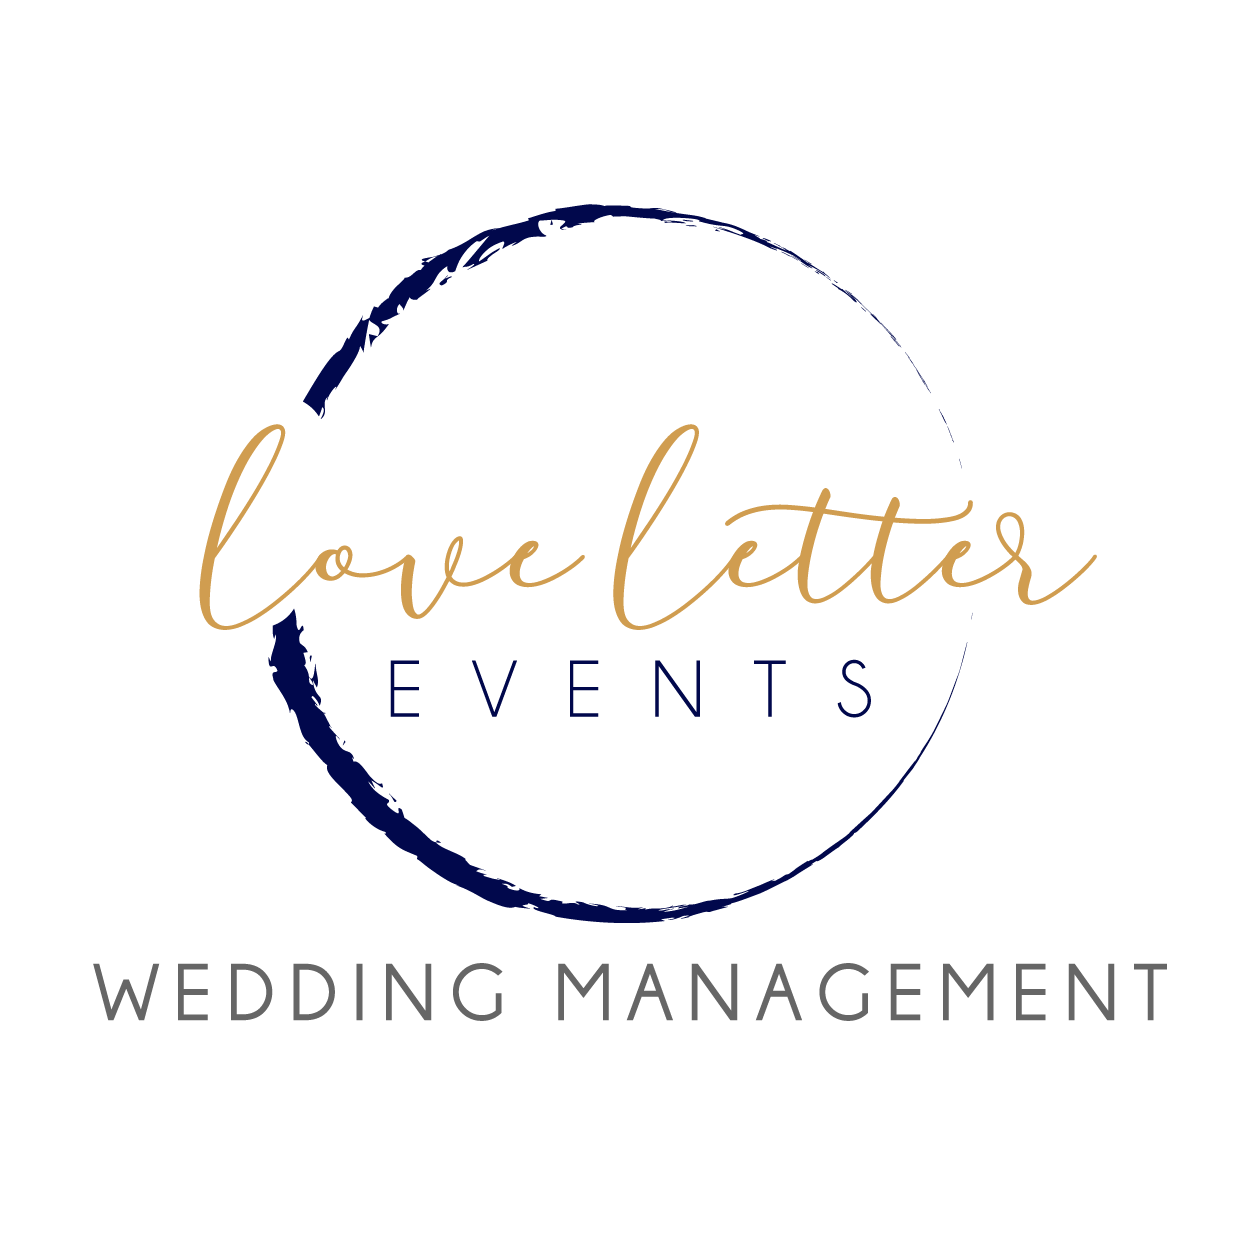 Love Letter Events | Wedding Planner in Grand Junction, Colorado featured on WED West Slope - a directory for wedding vendors.